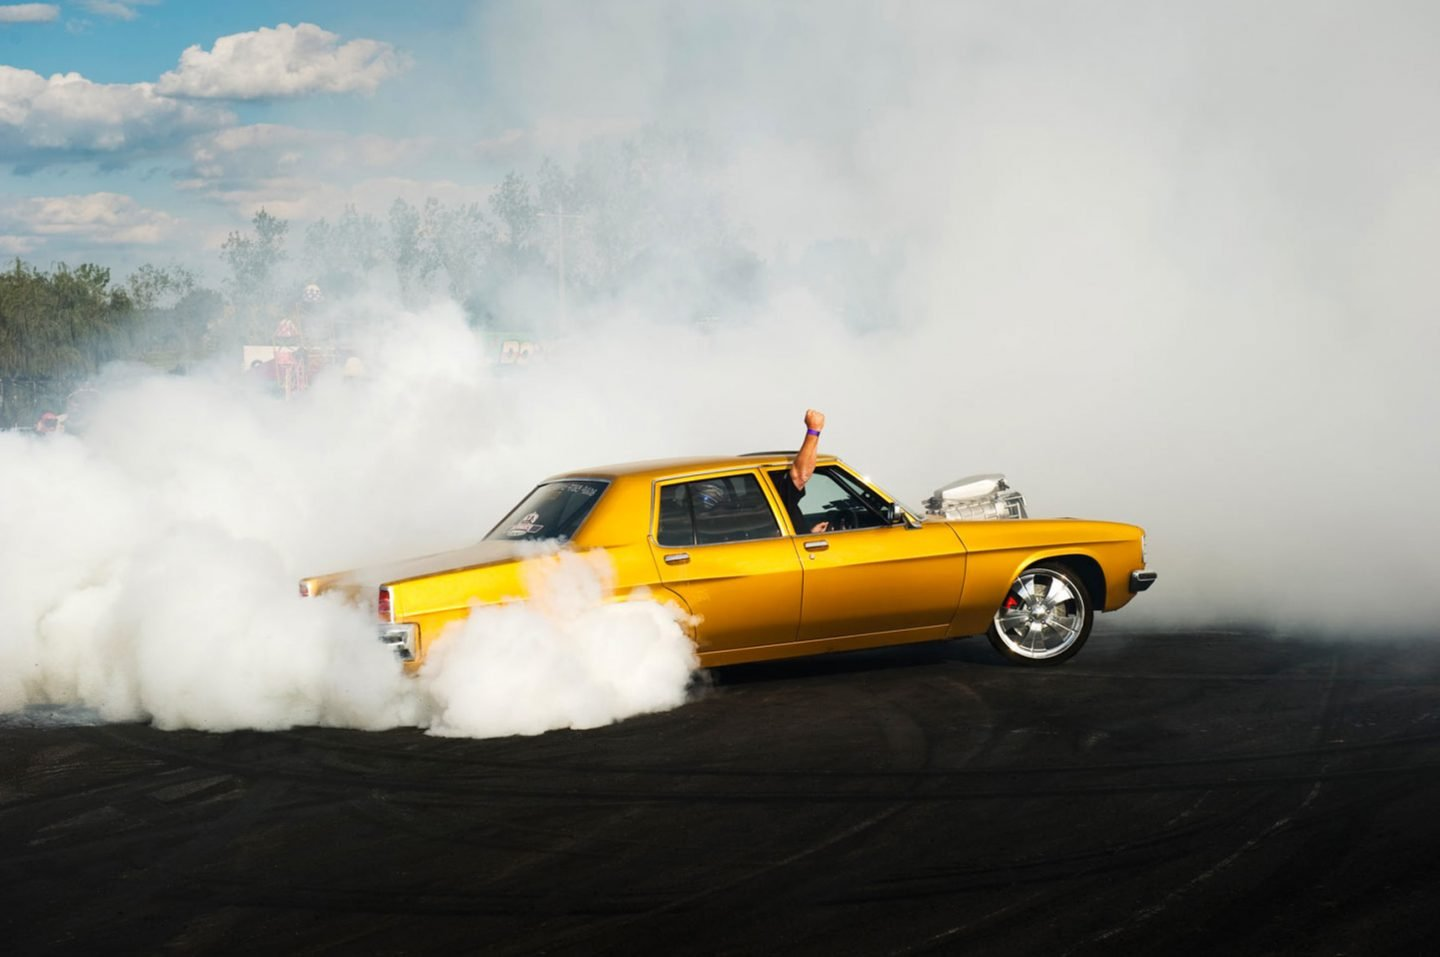 iGNANT_Photography_Burnout_Series_Simon_Davidson_11